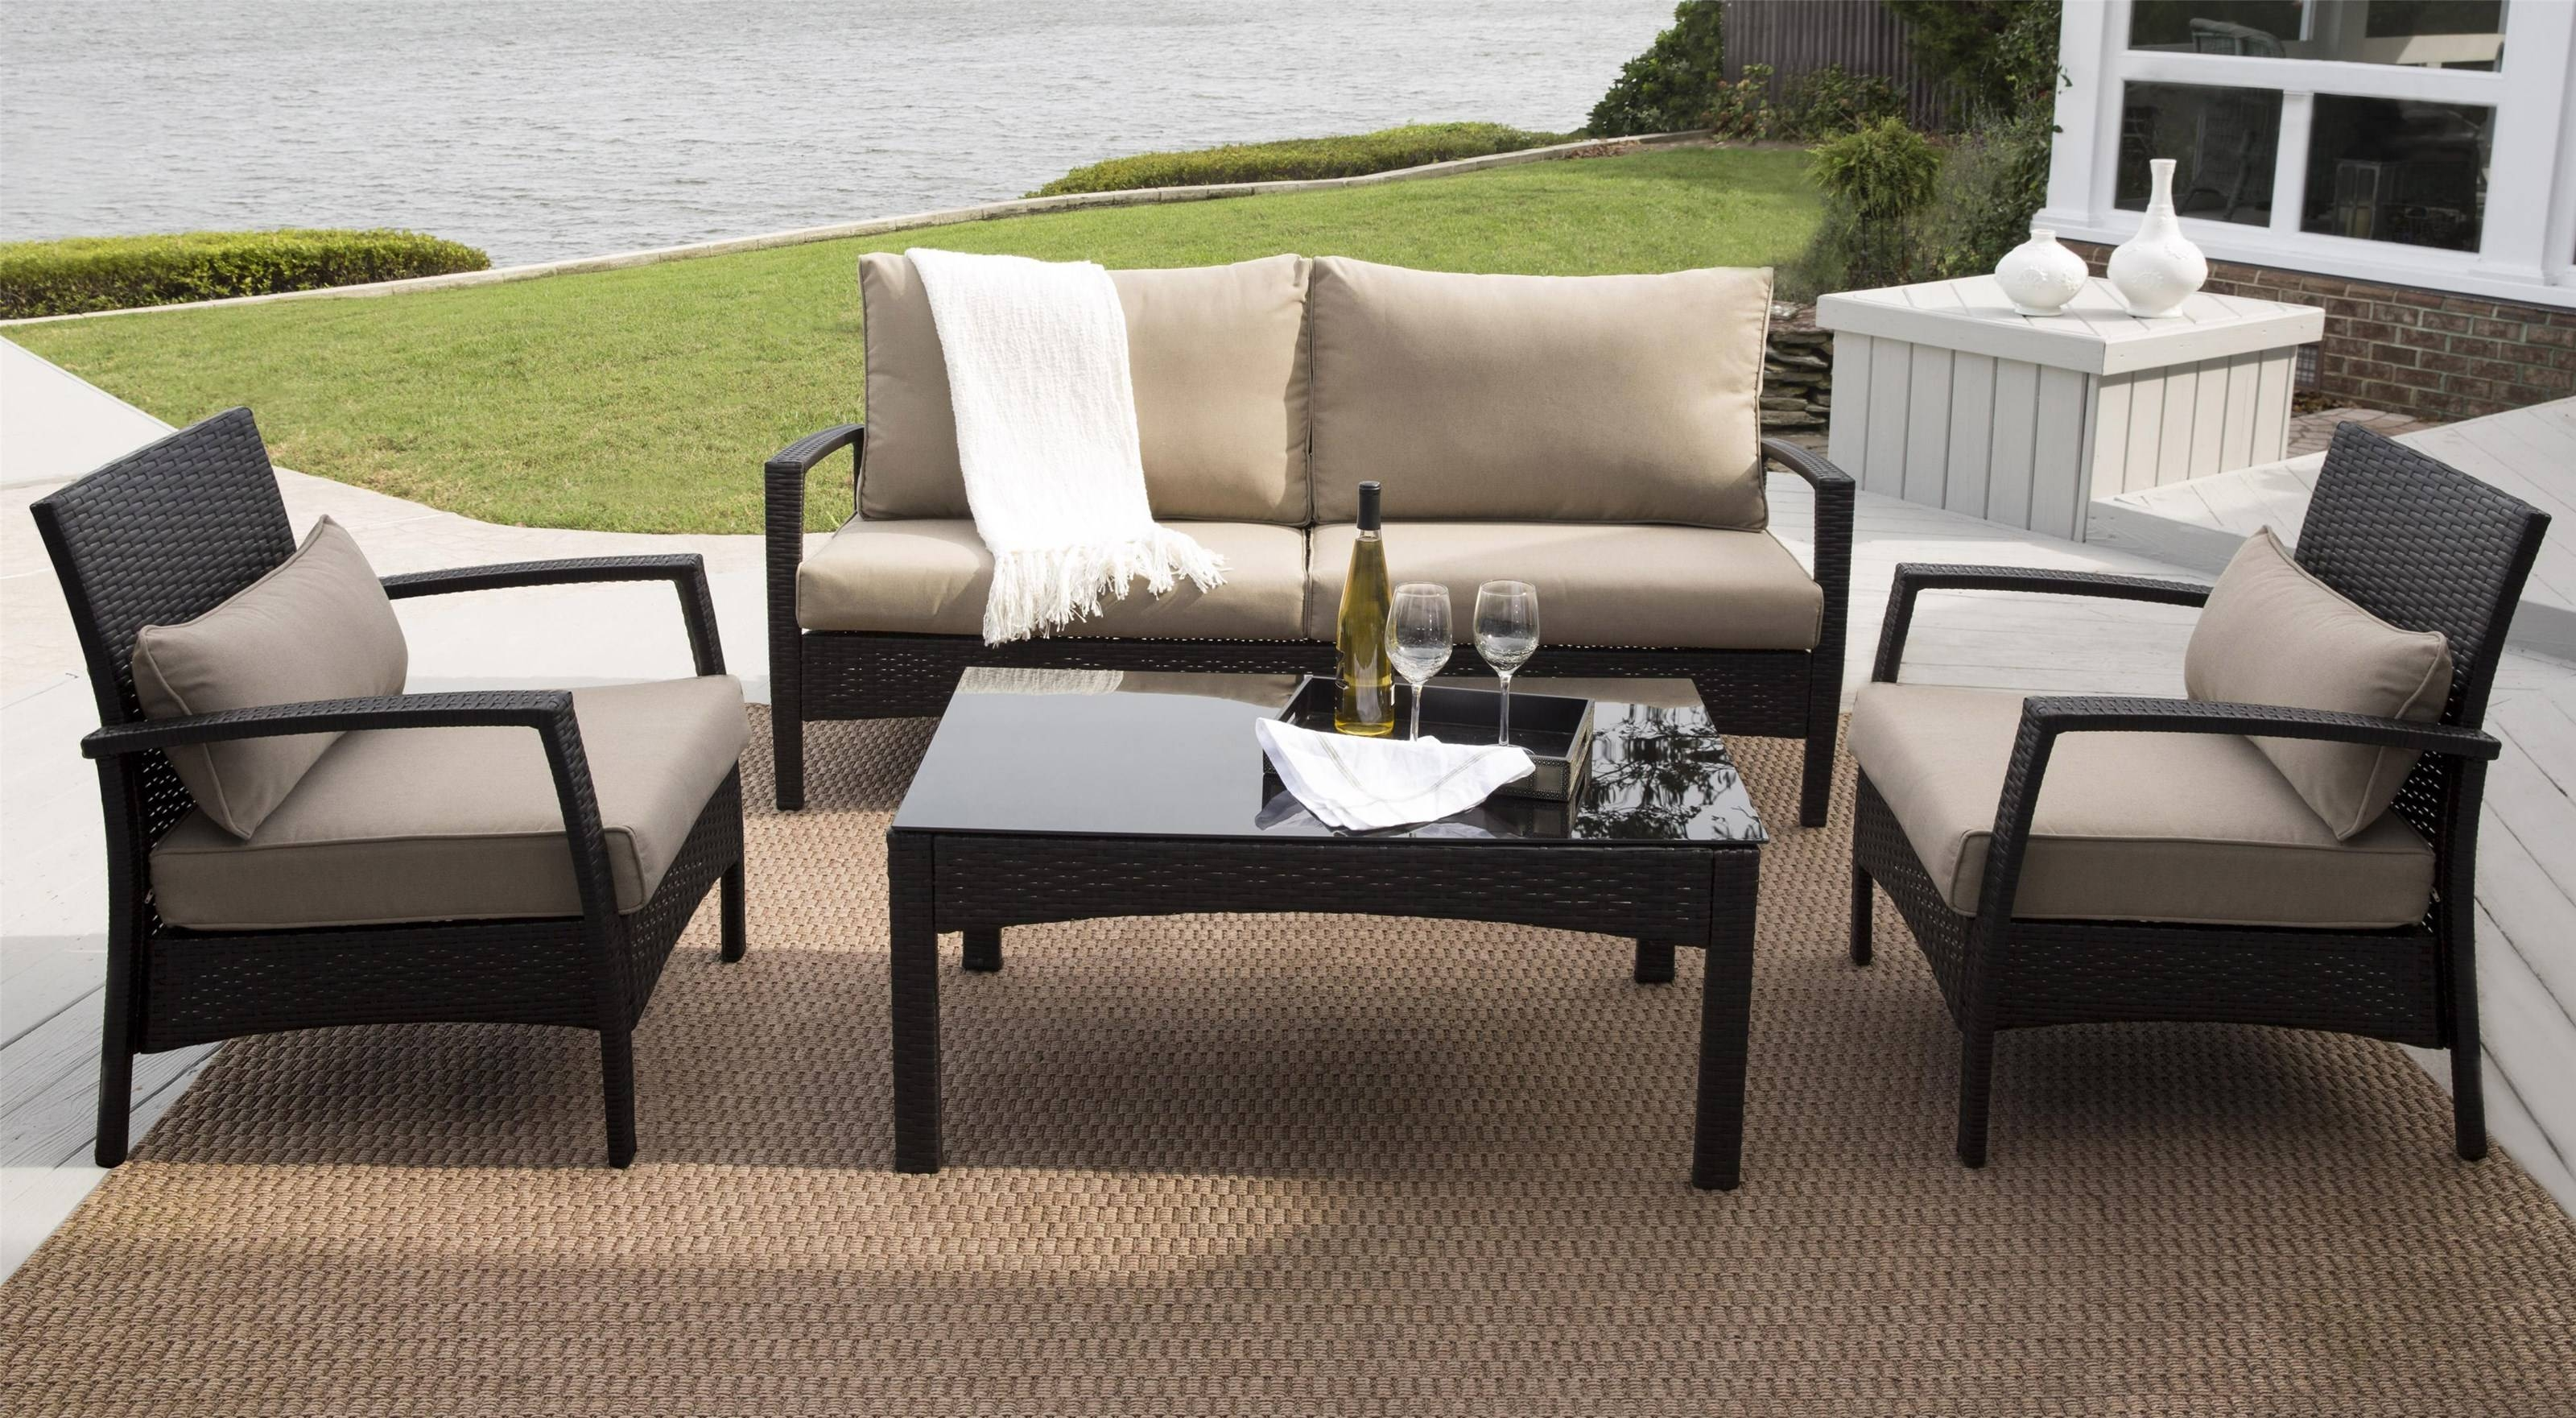 Antigua Outdoor Sofa, 2 Chairs And Cocktail Table Set - Morris intended for Outdoor Sofa Chairs (Image 3 of 30)